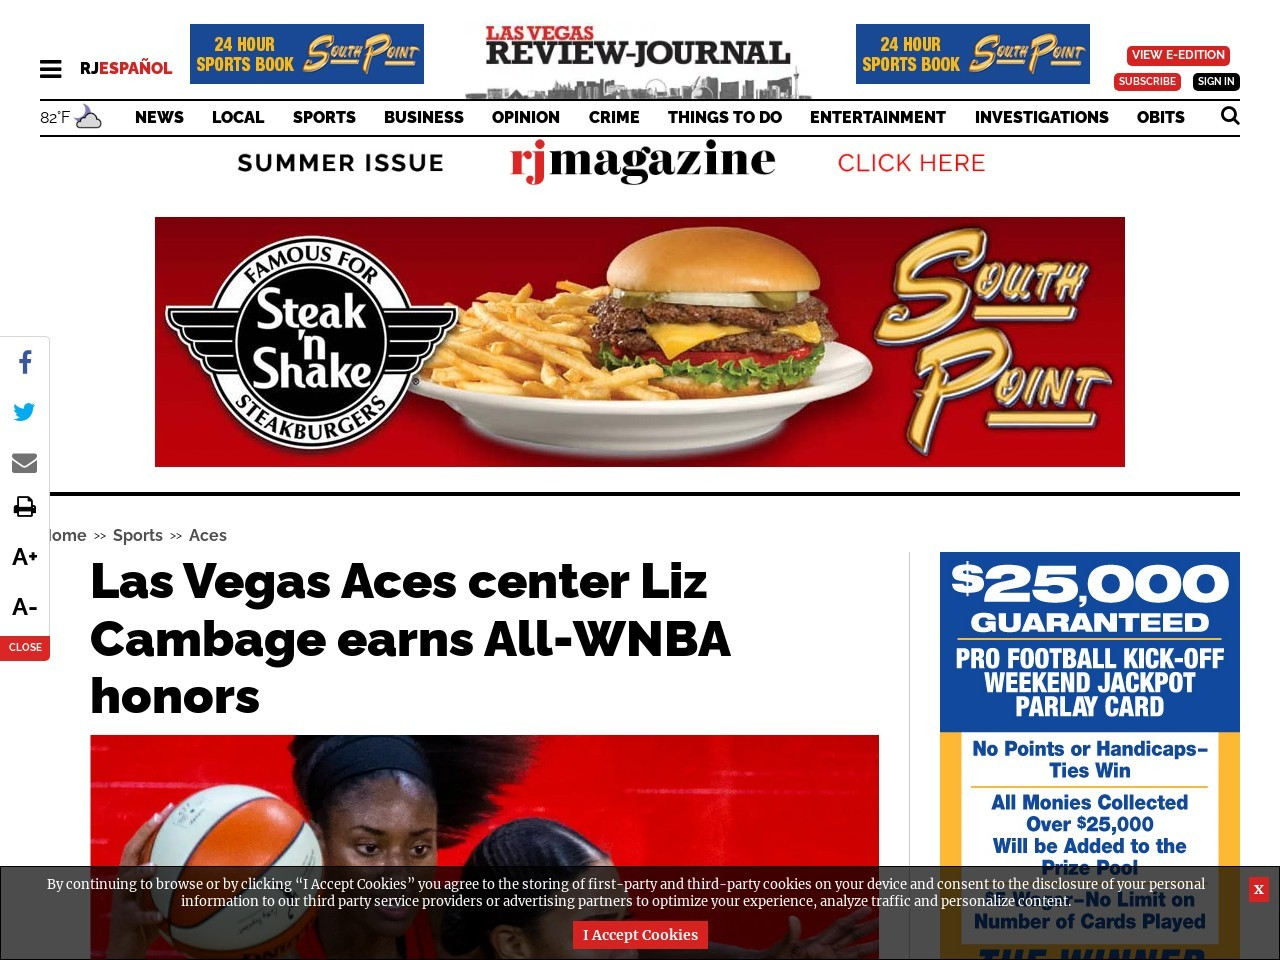 Las Vegas Aces center Liz Cambage earns All-WNBA honors